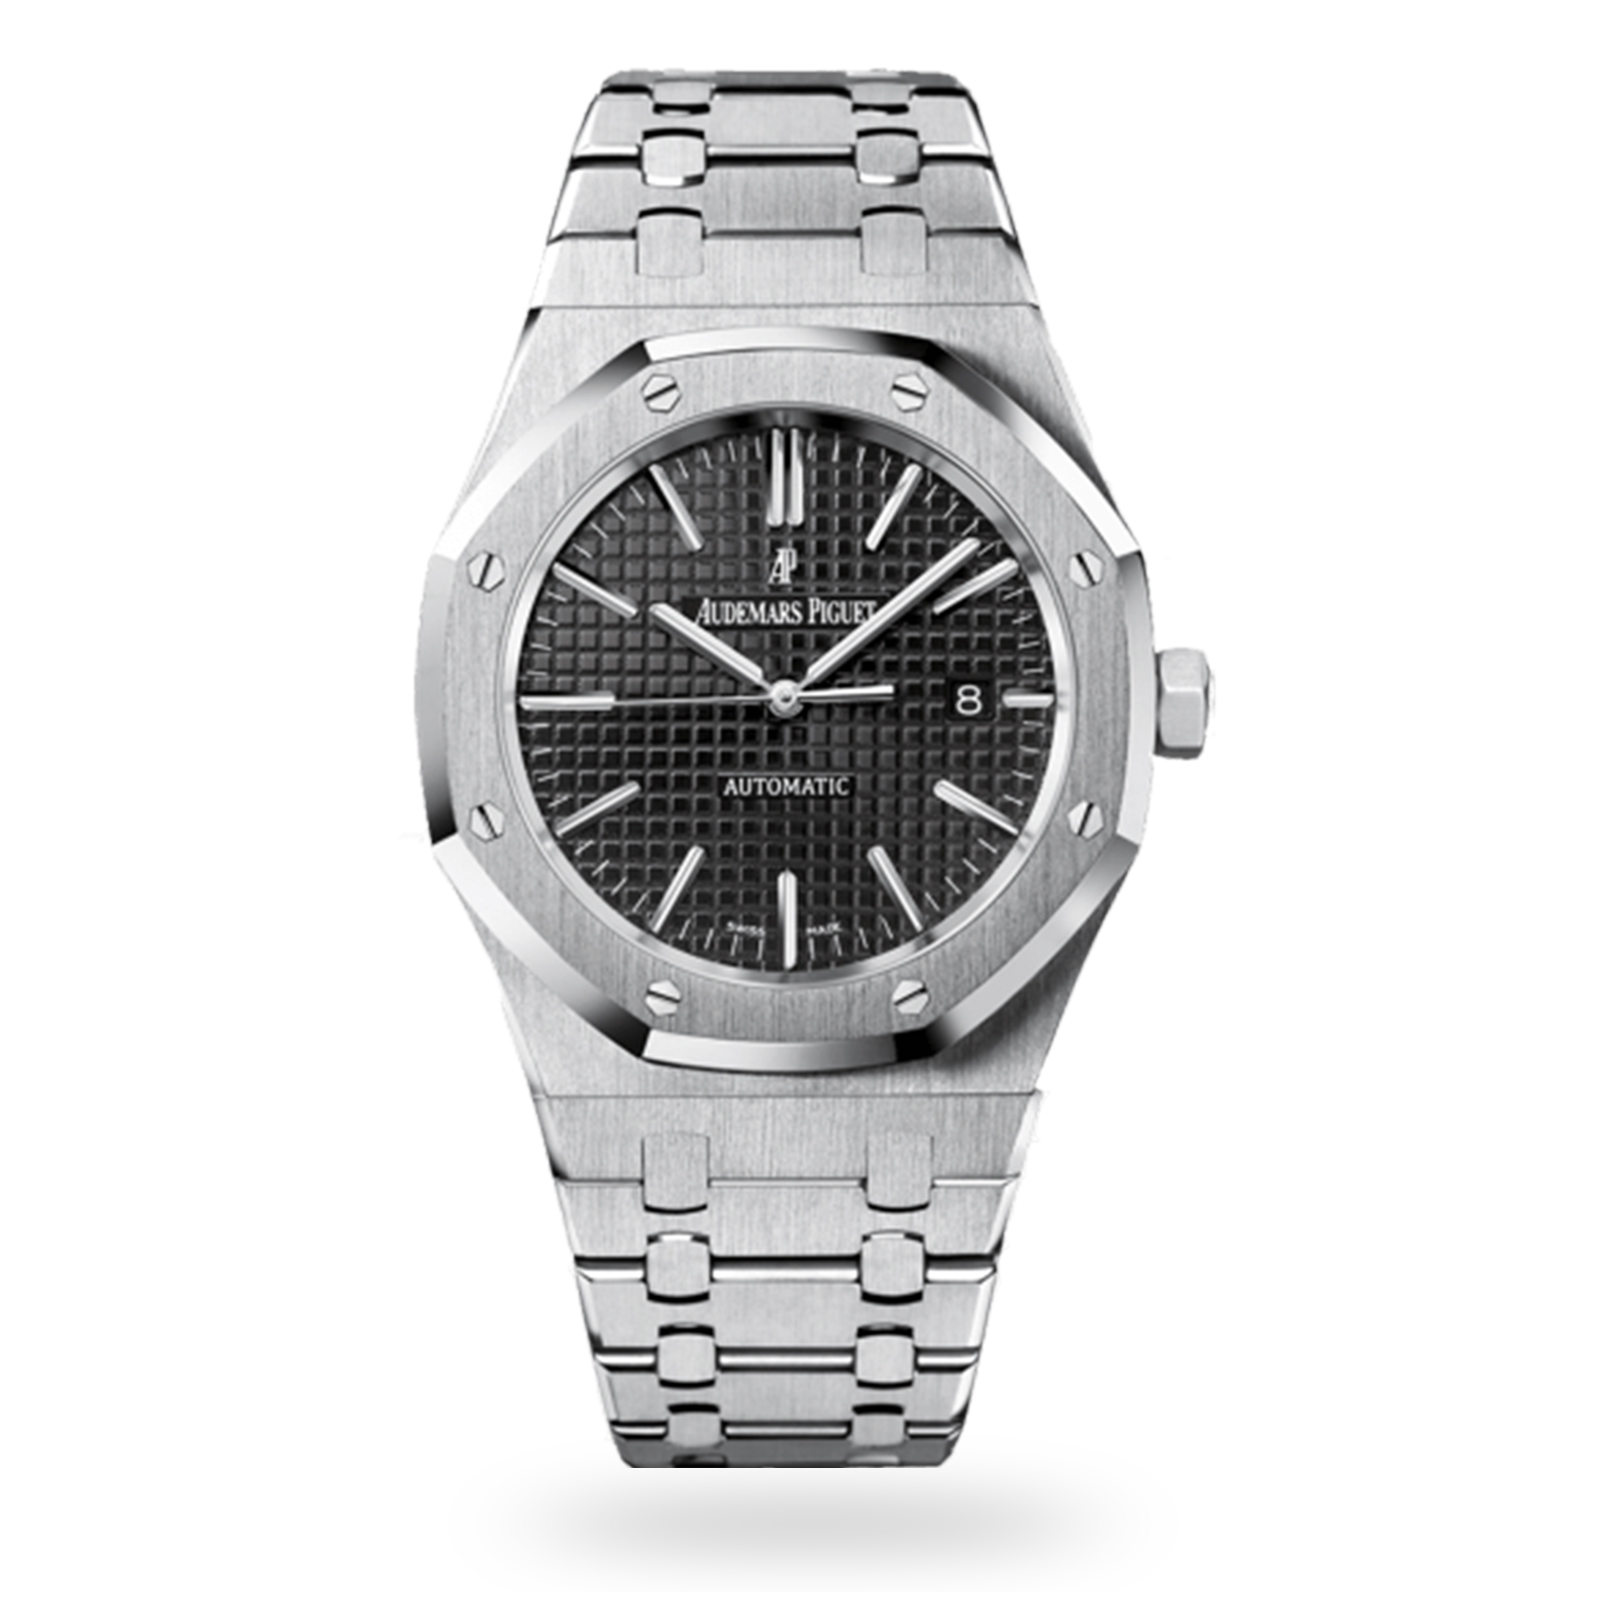 284675670c641 Audemars Piguet Royal Oak Self-winding Mens Watch